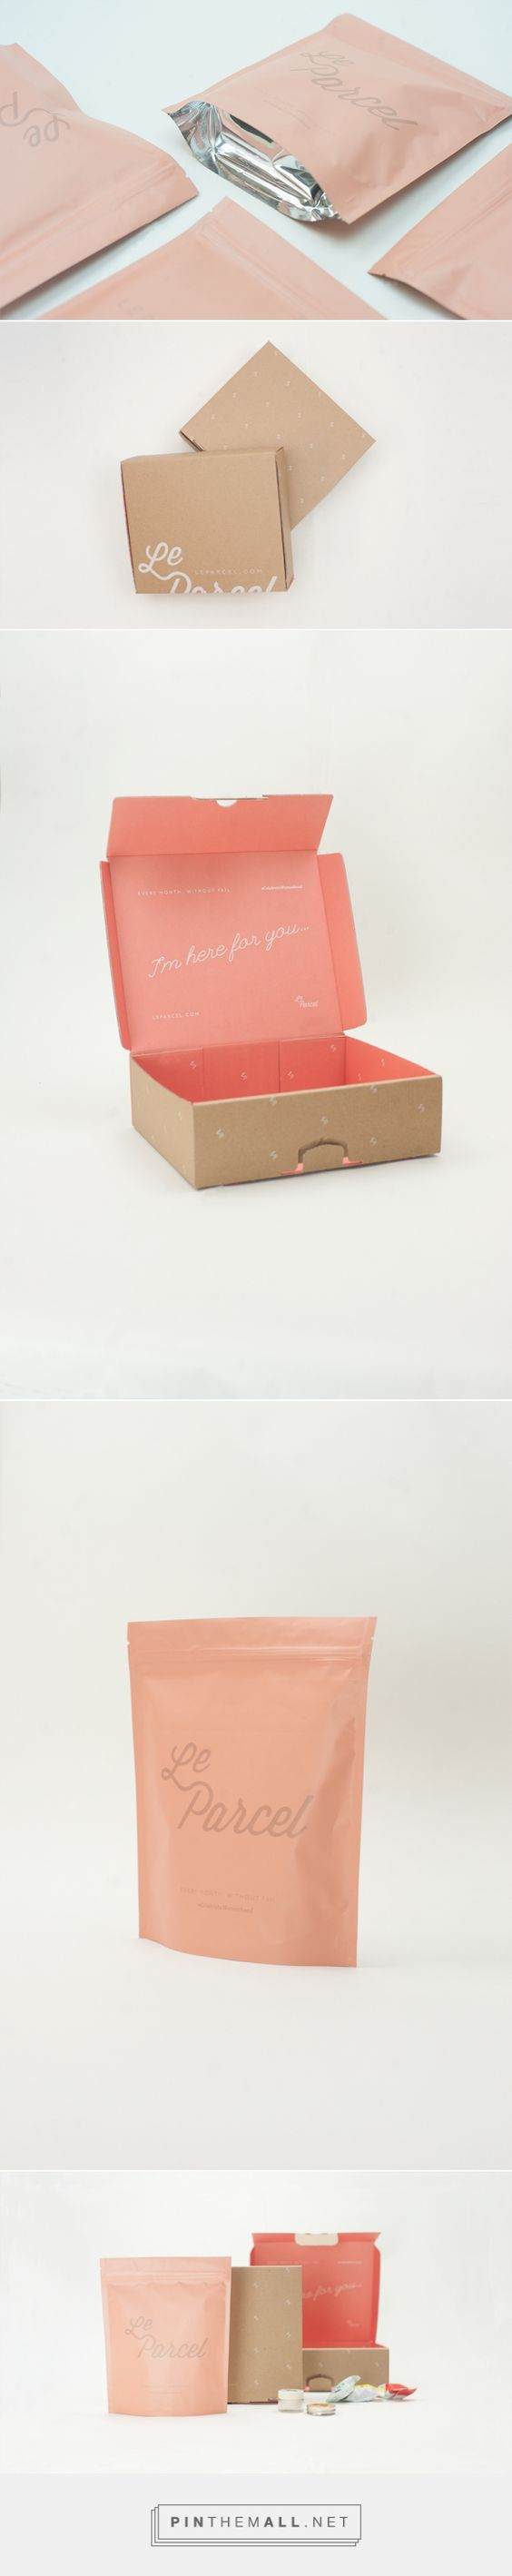 """Le Parcel Packaging System by Seven Fifty Five curated by Packaging Diva PD. Third in a series of packaging design systems a monthly delivery service for """"that time of the month"""" includes a lighter-weight box, heat sealed bags, and a bright pink interior."""